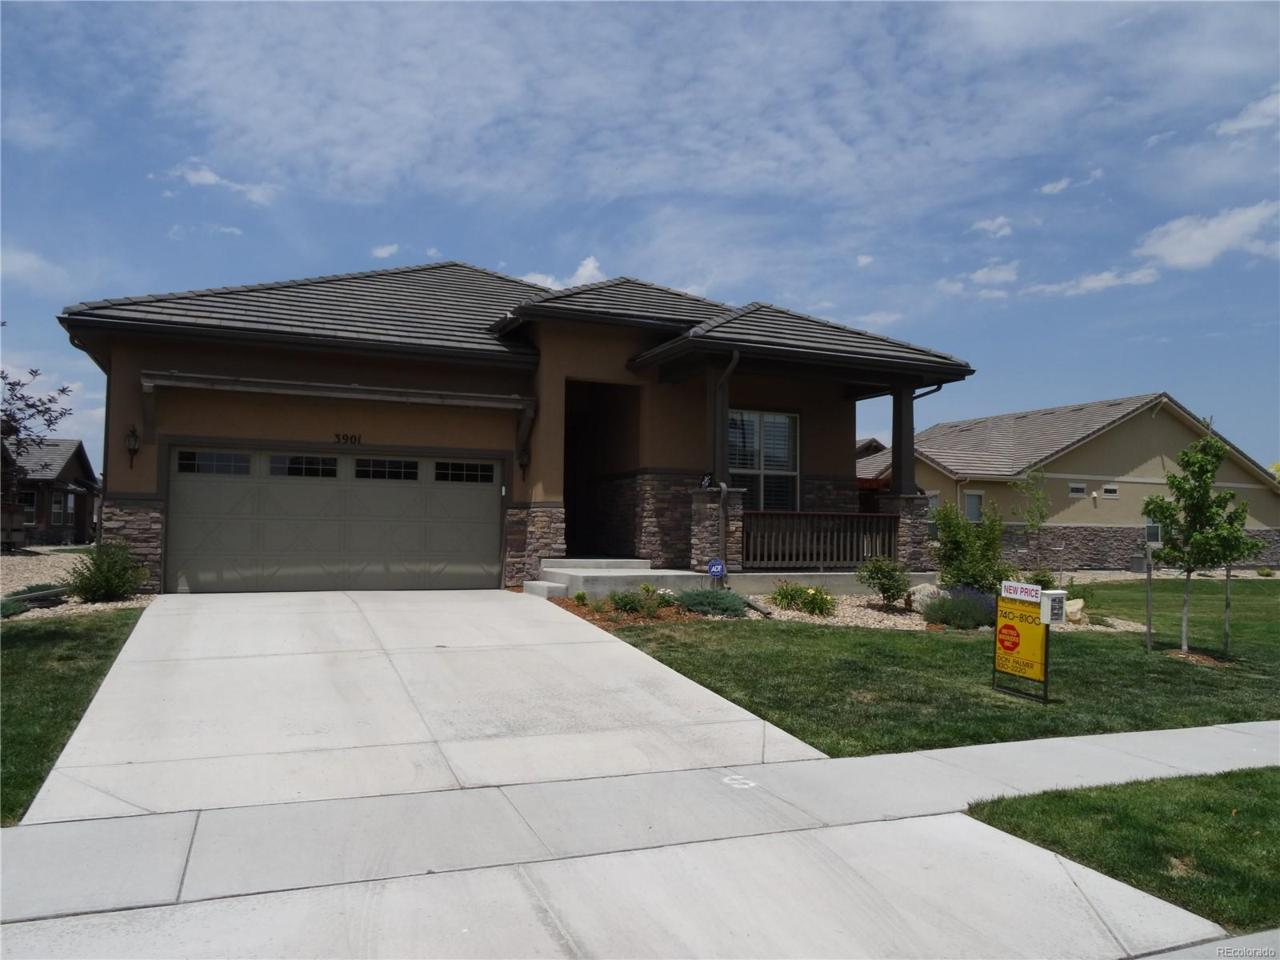 3901 Wild Horse Drive, Broomfield, CO 80023 (MLS #2789741) :: 8z Real Estate